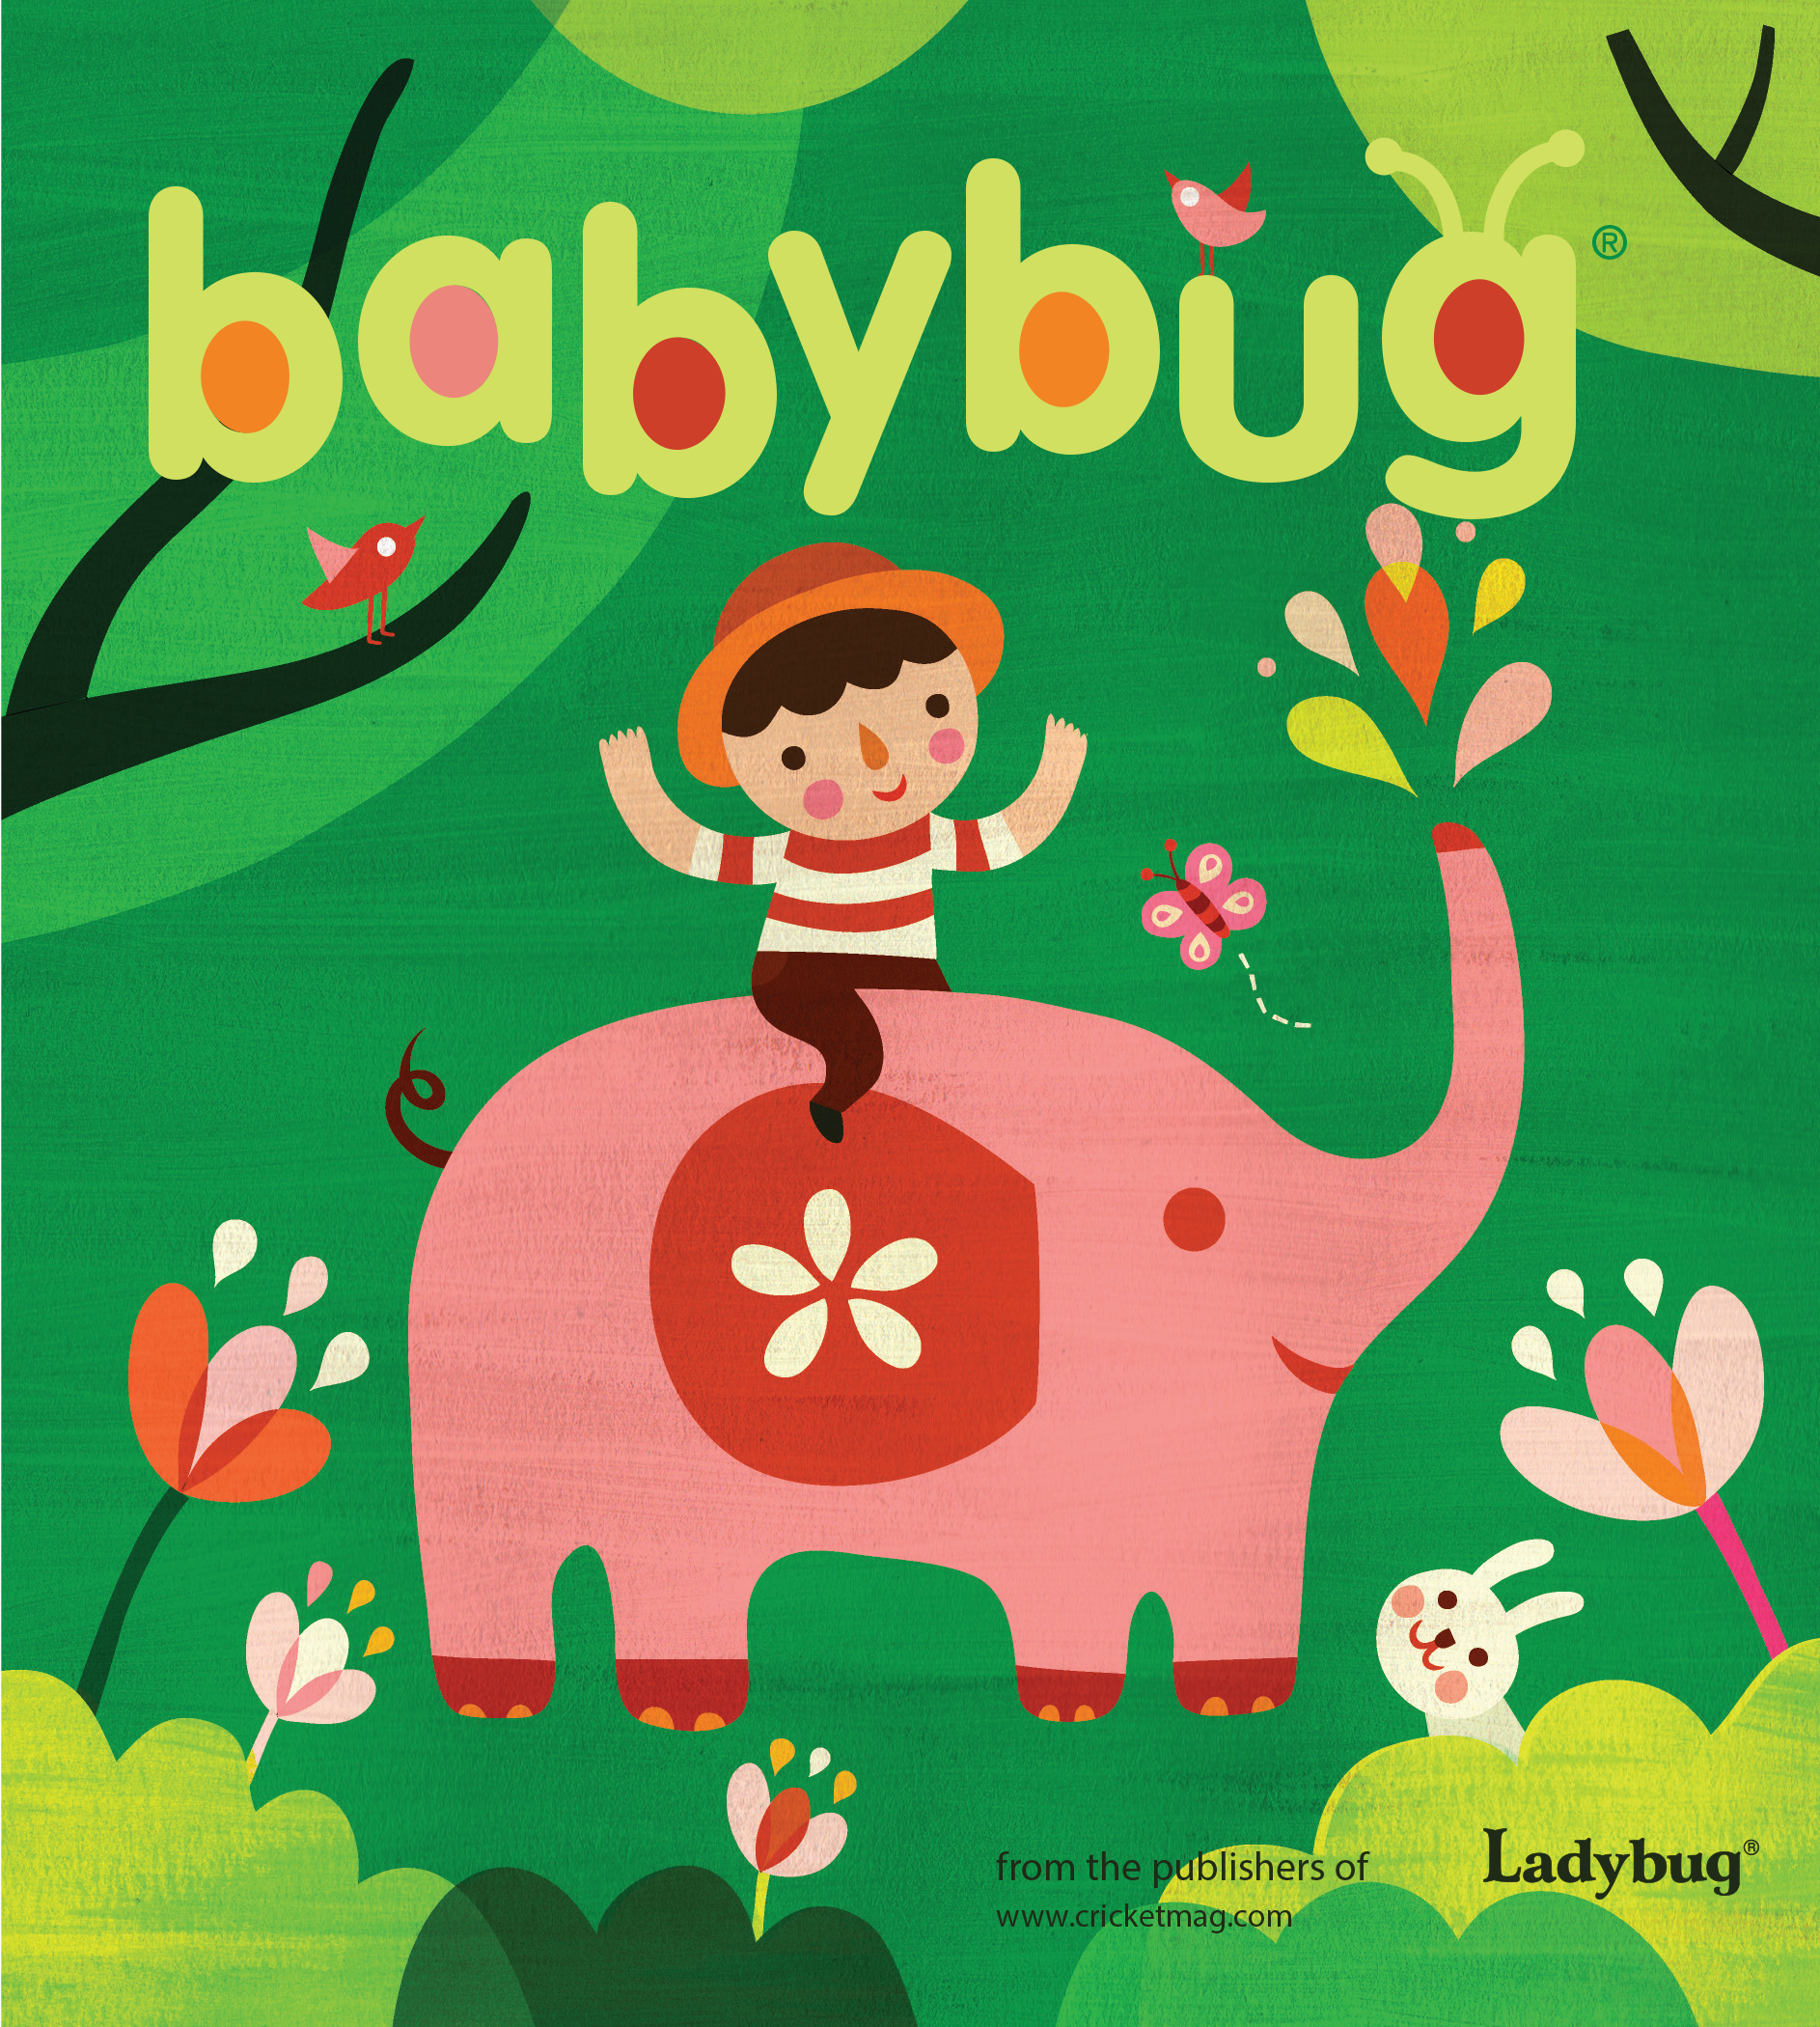 Babybug magazine cover, by Hsinping Pan on March 2010 | Growing Up ...